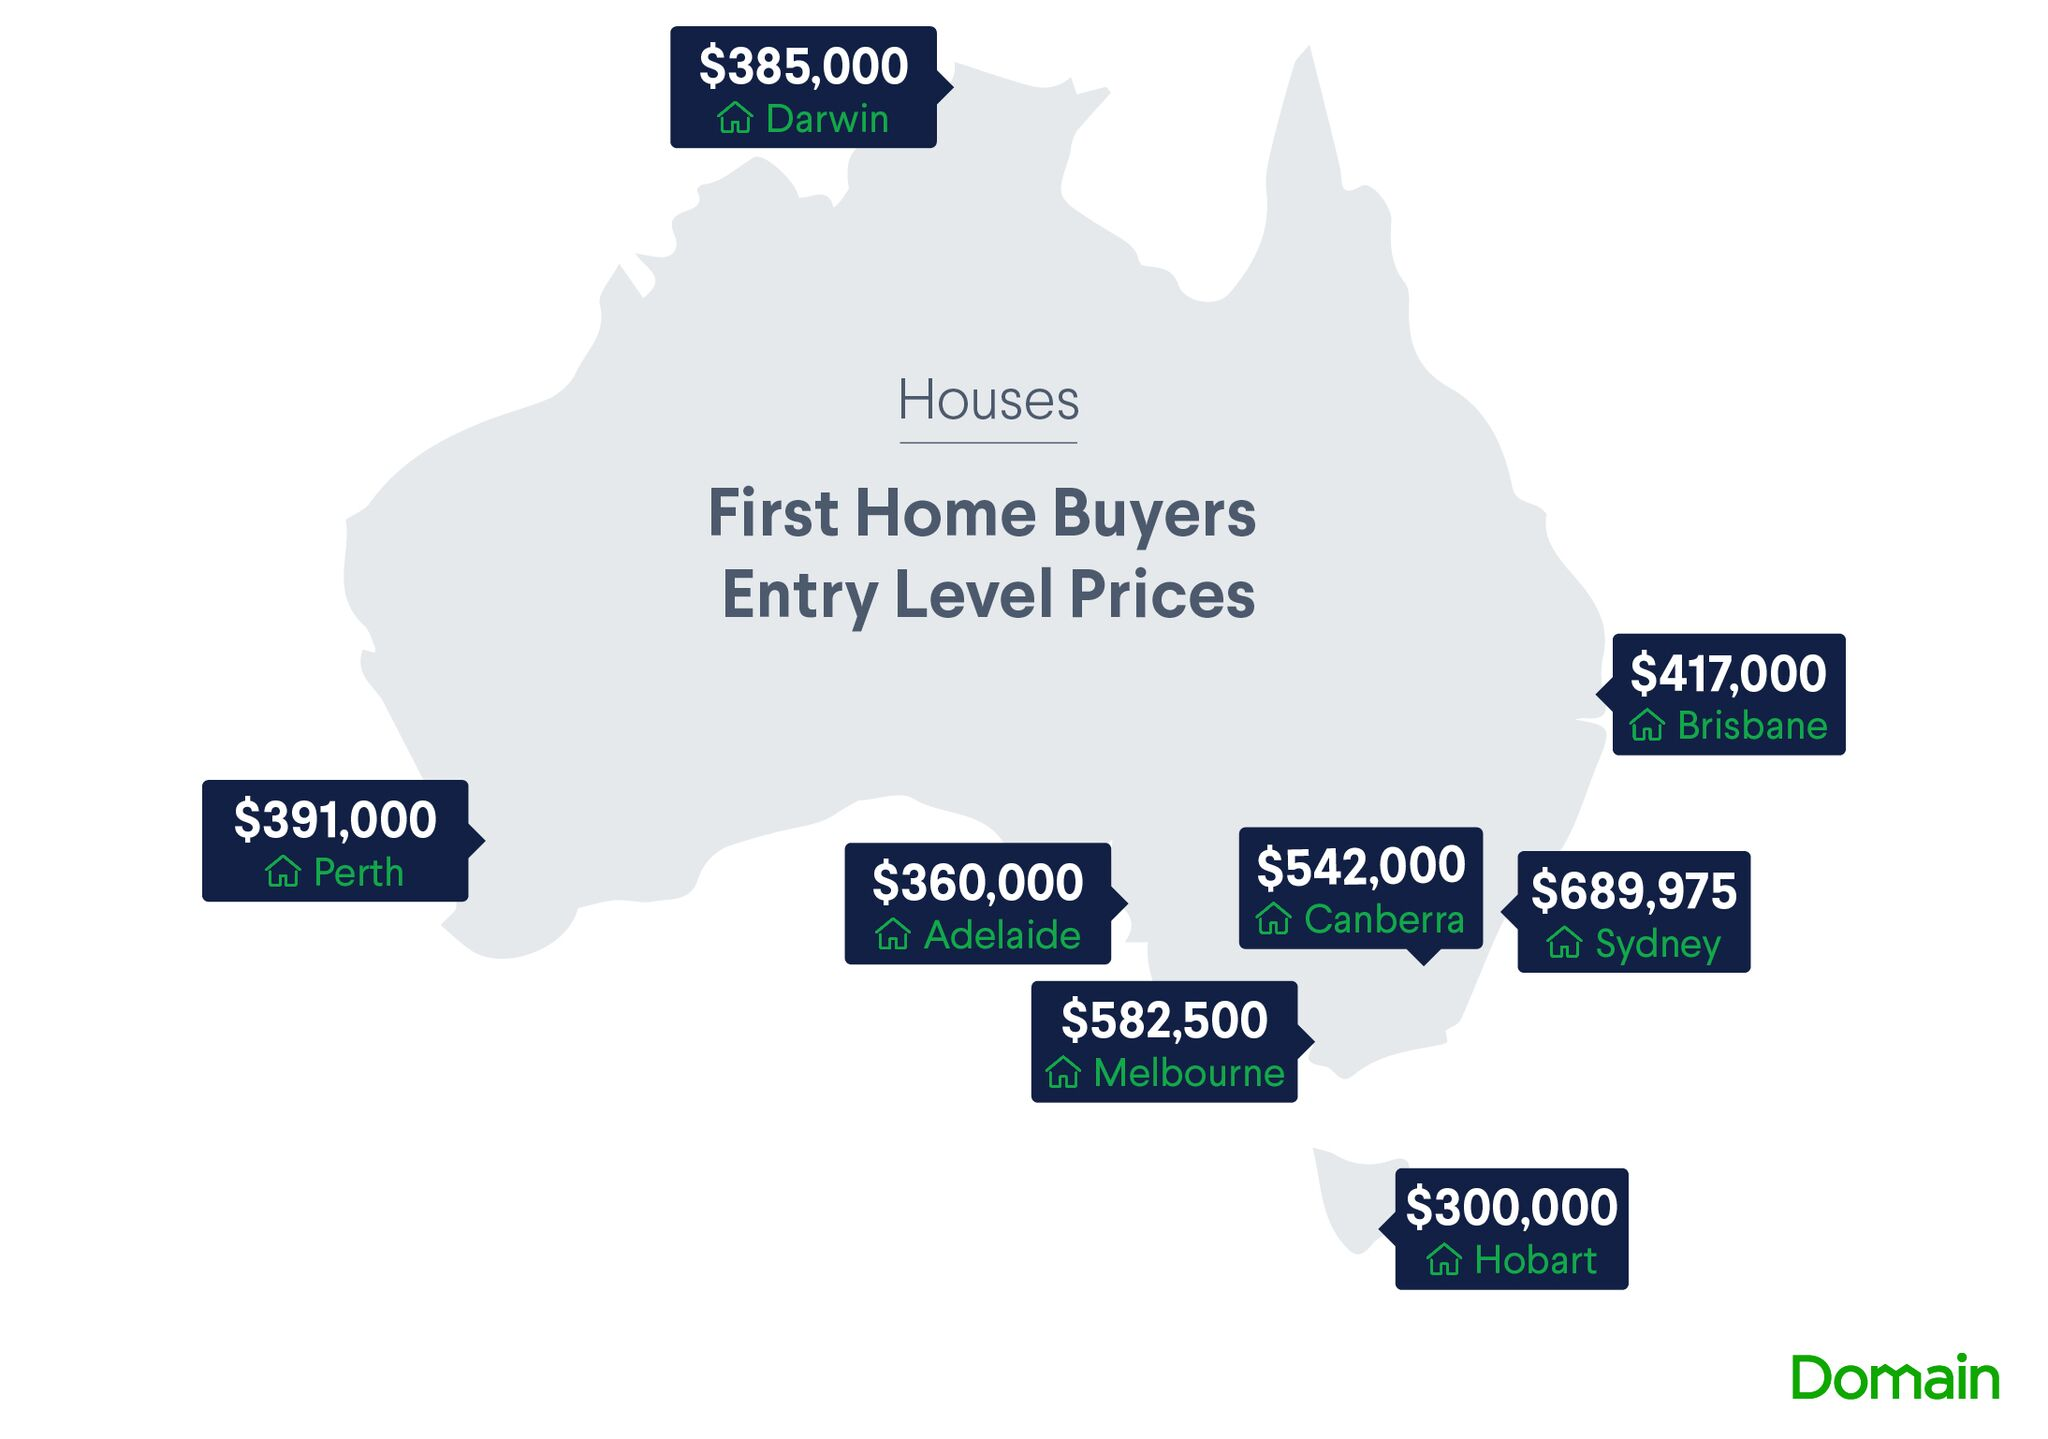 Entry level prices for houses: Domain